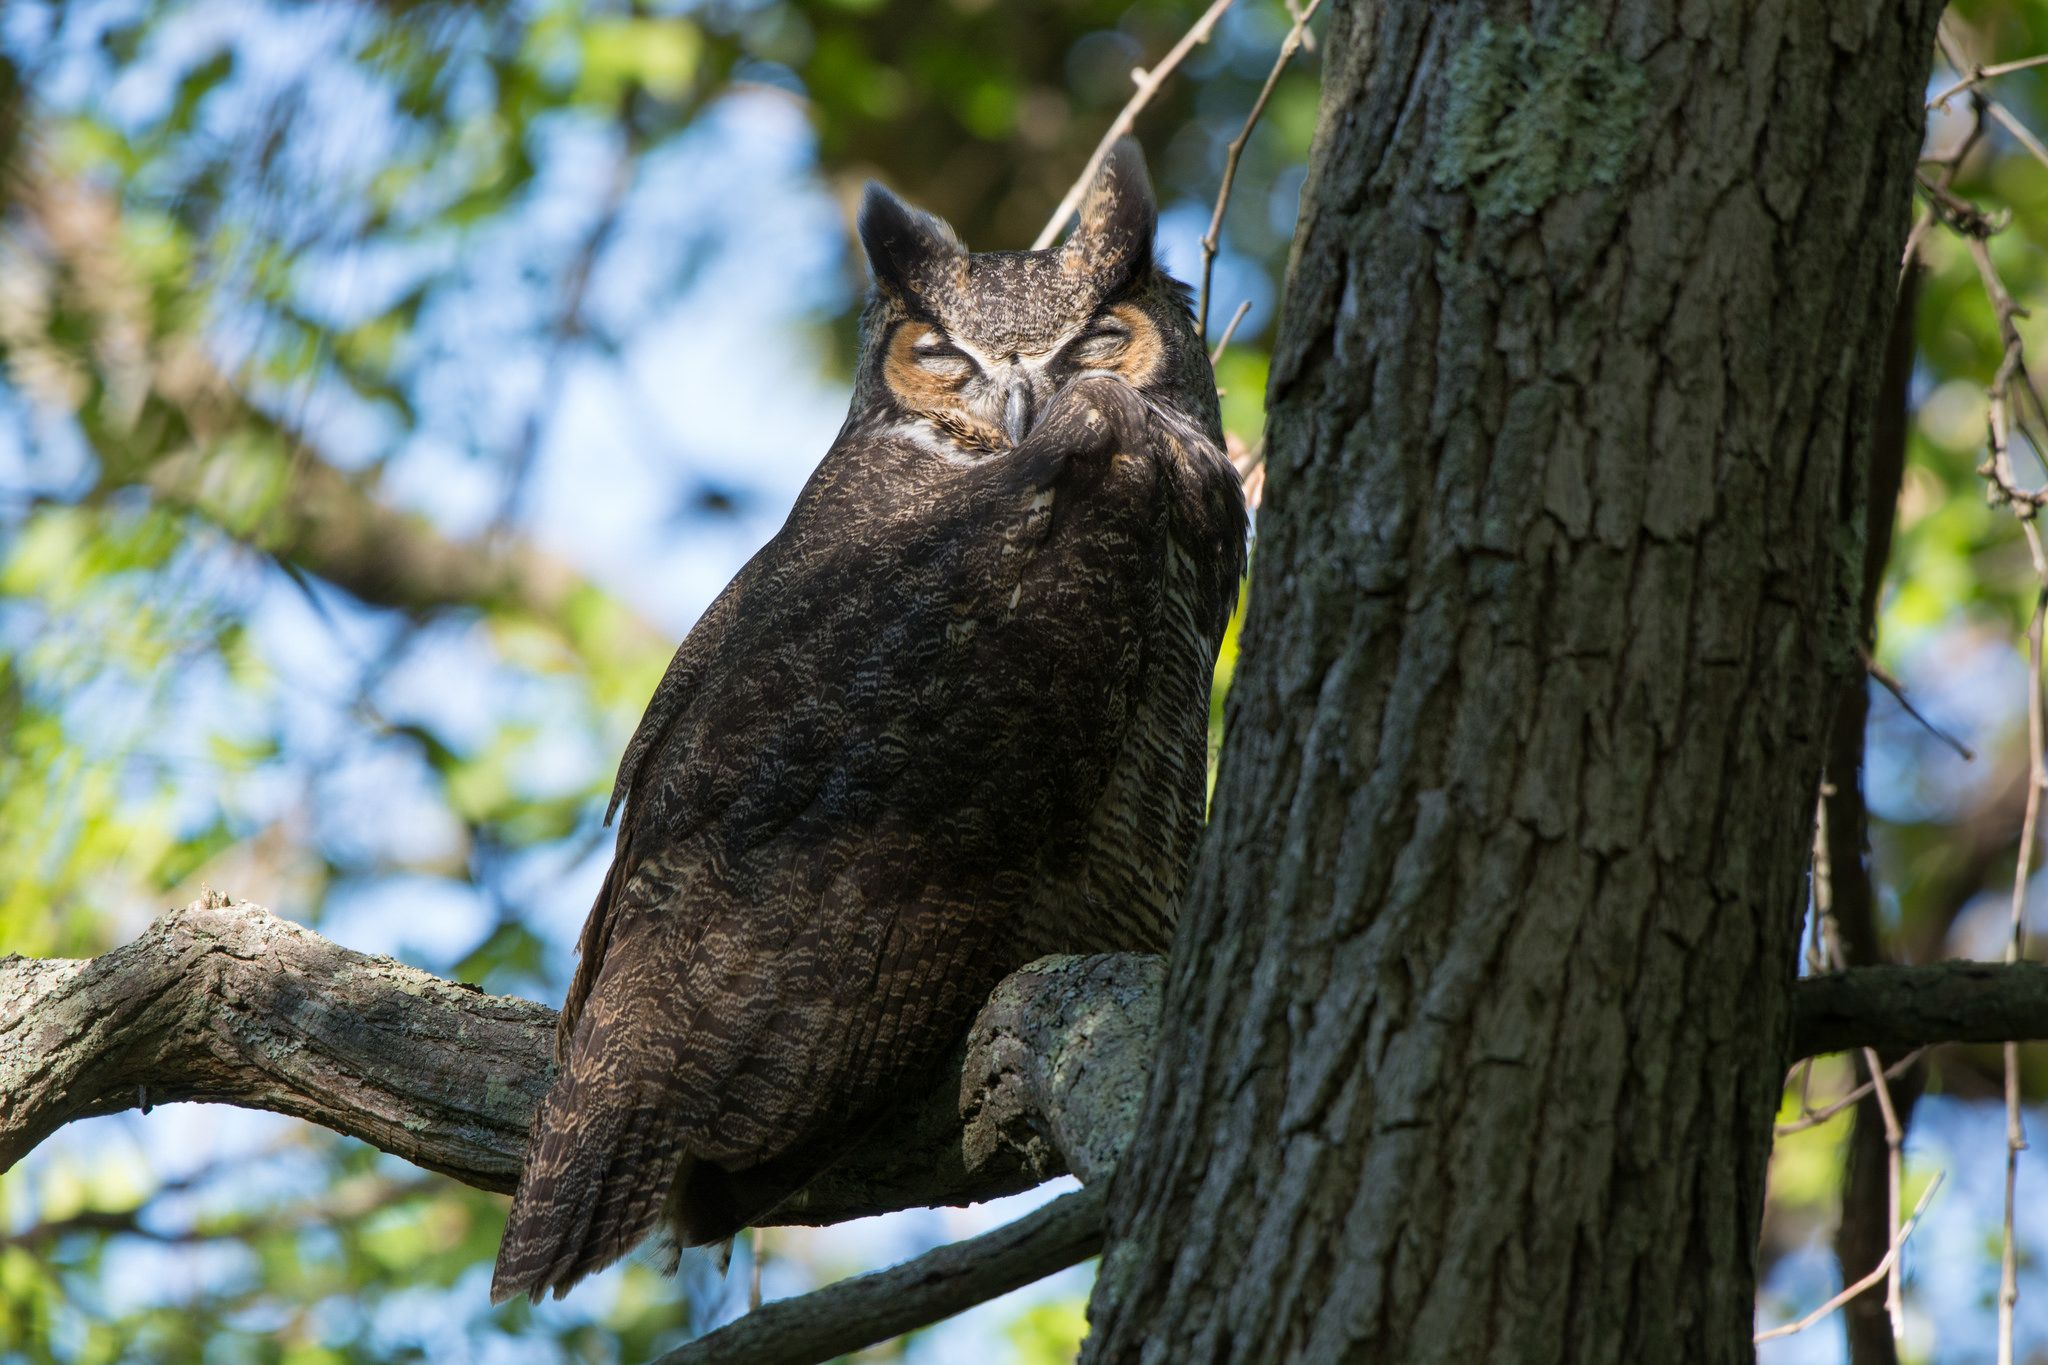 """https://flic.kr/p/N5uVWF 